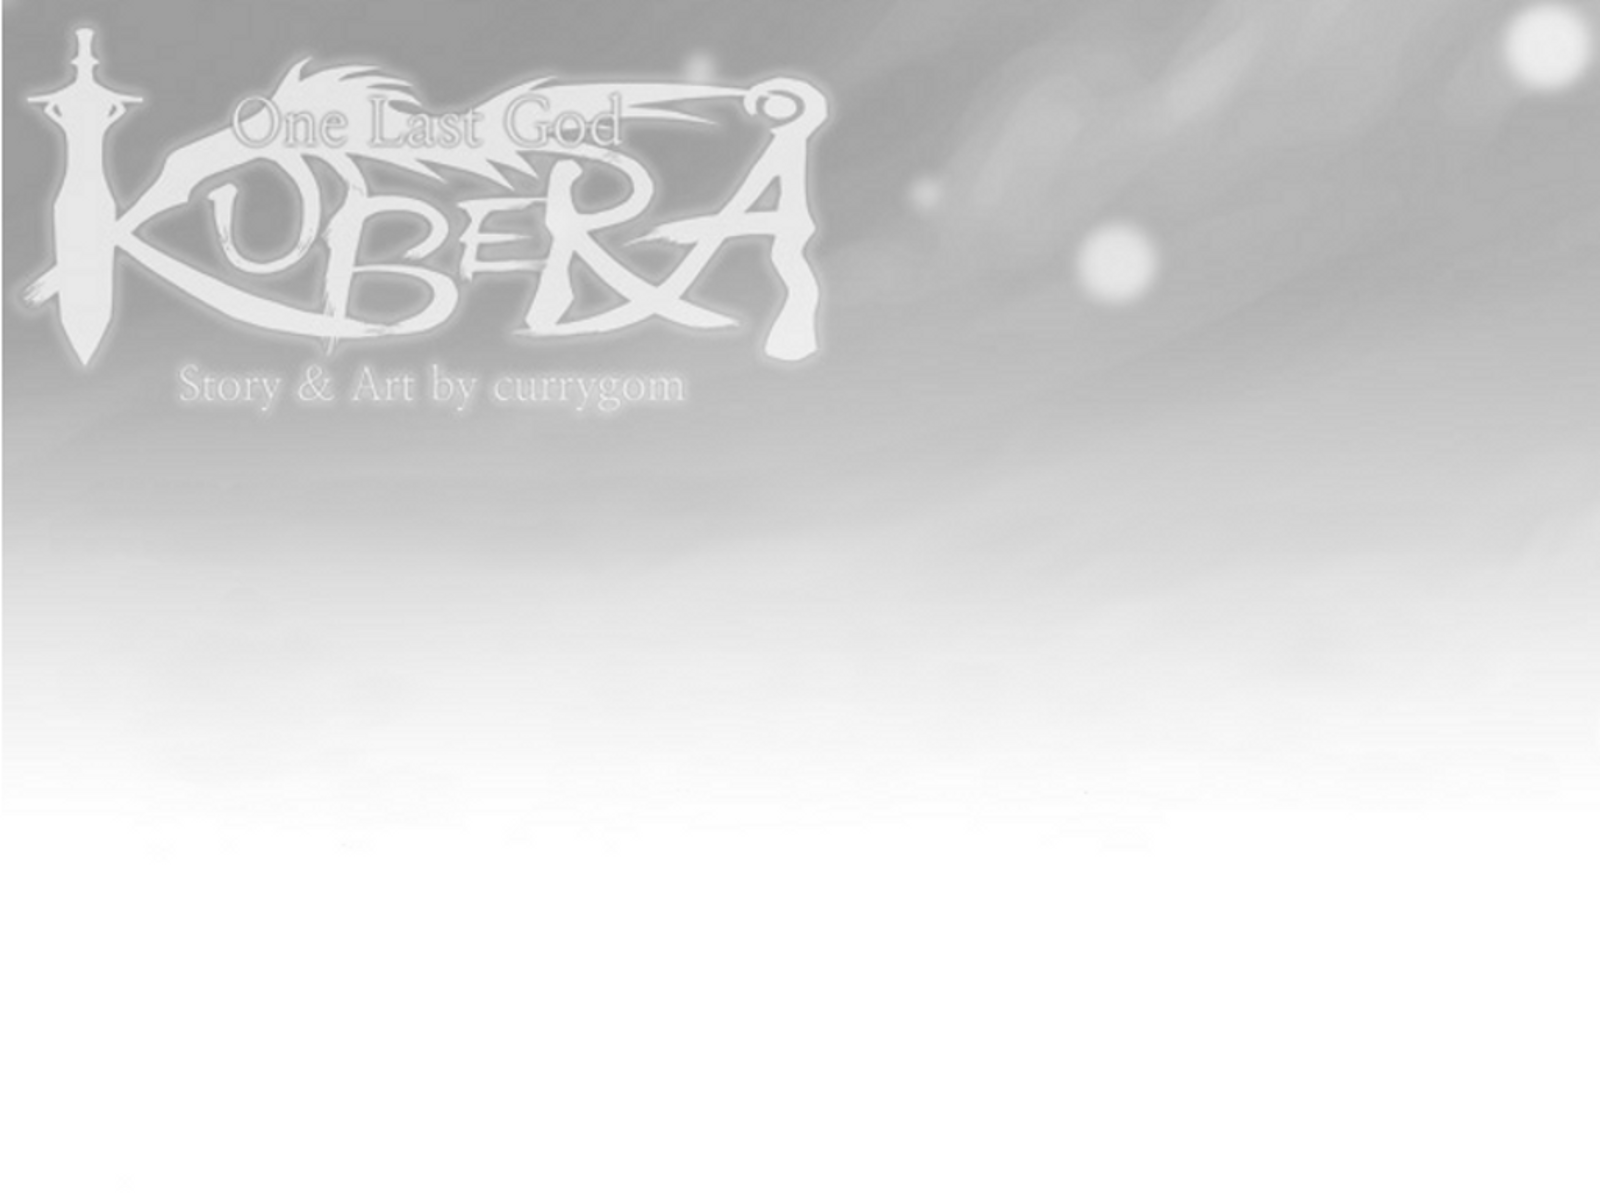 One Last God Kubera Wallpaper Black And White 1600x1200